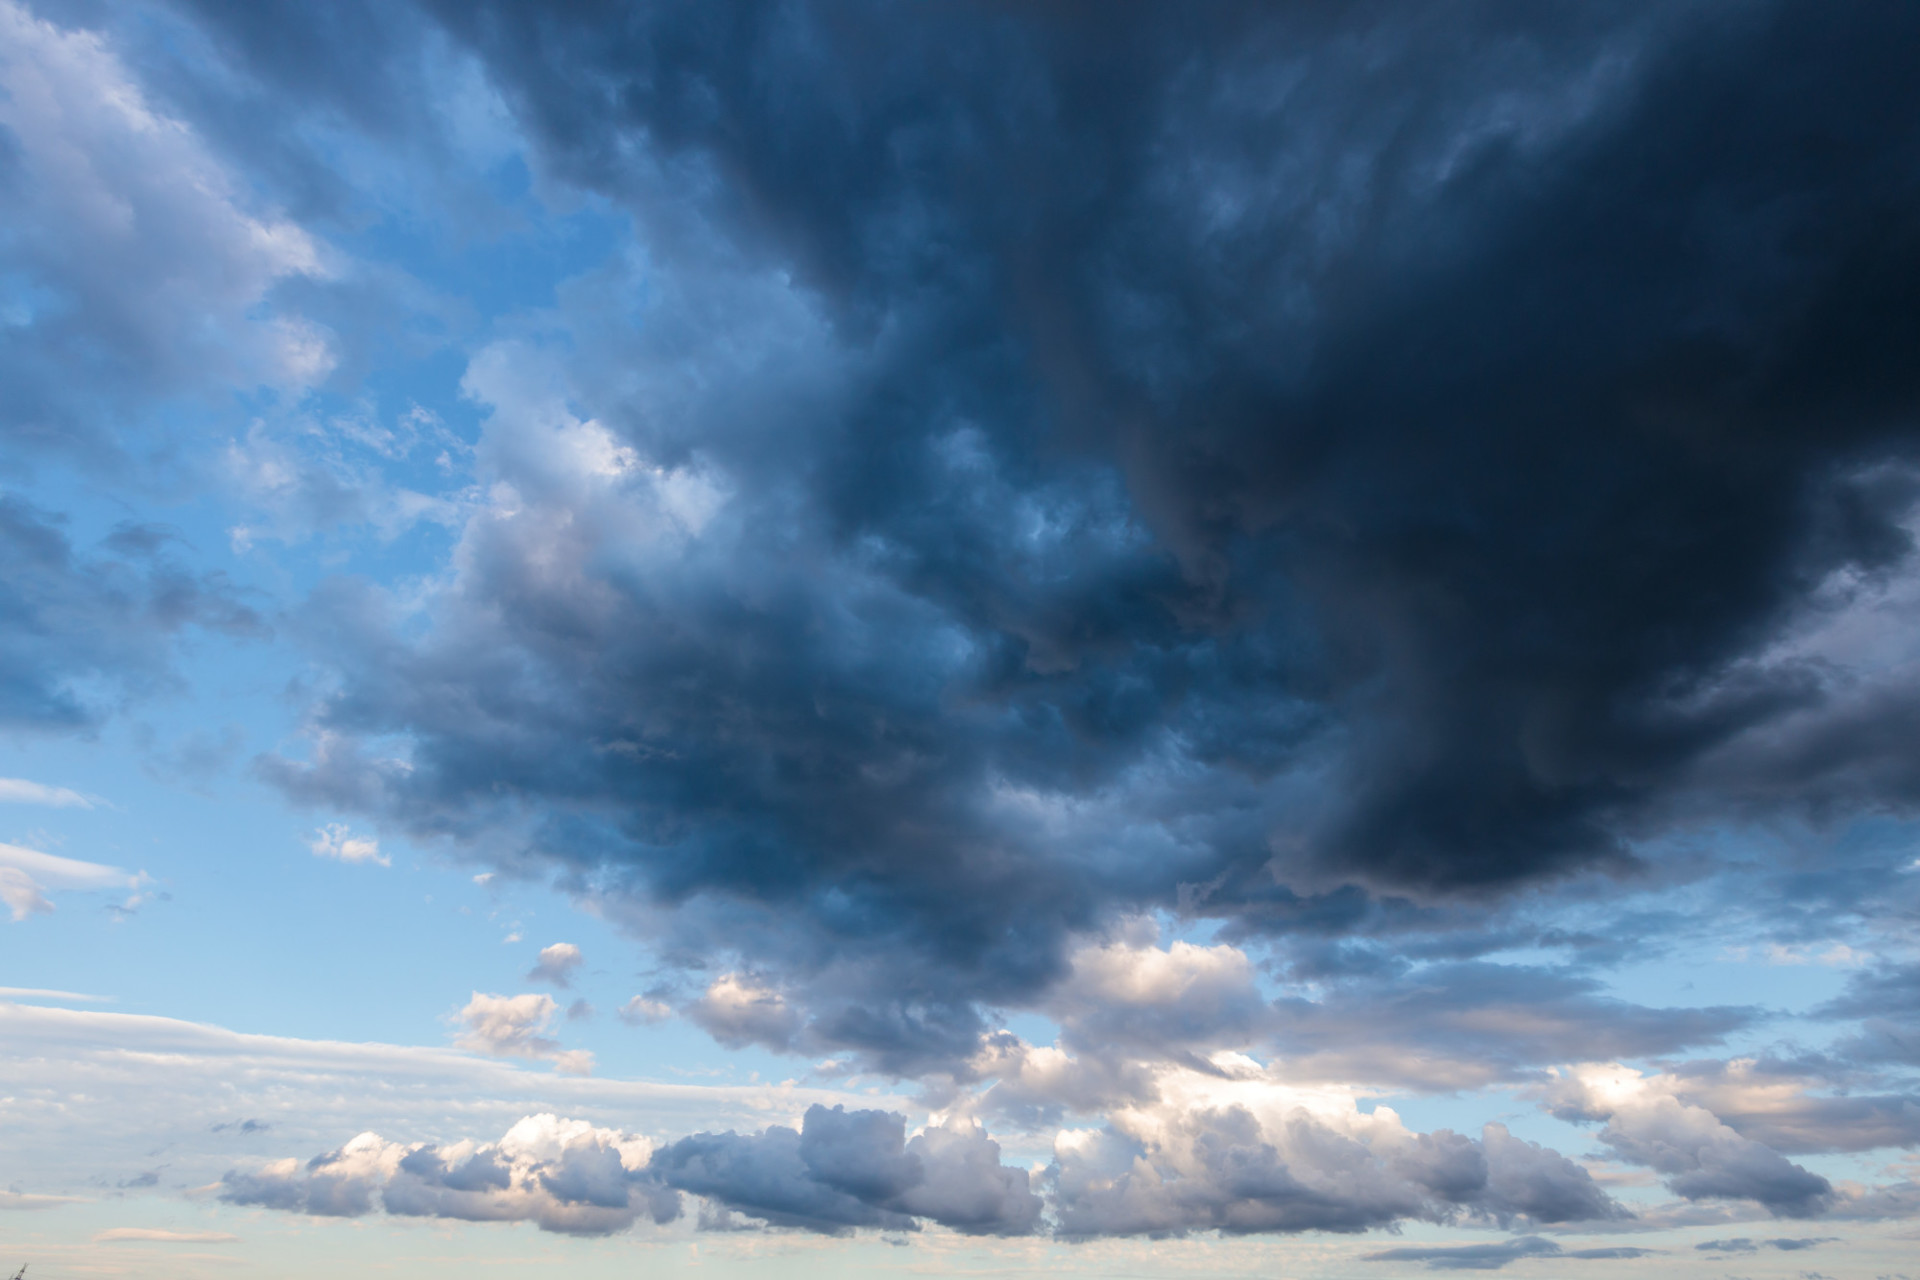 storm clouds gathering sky replacement skys